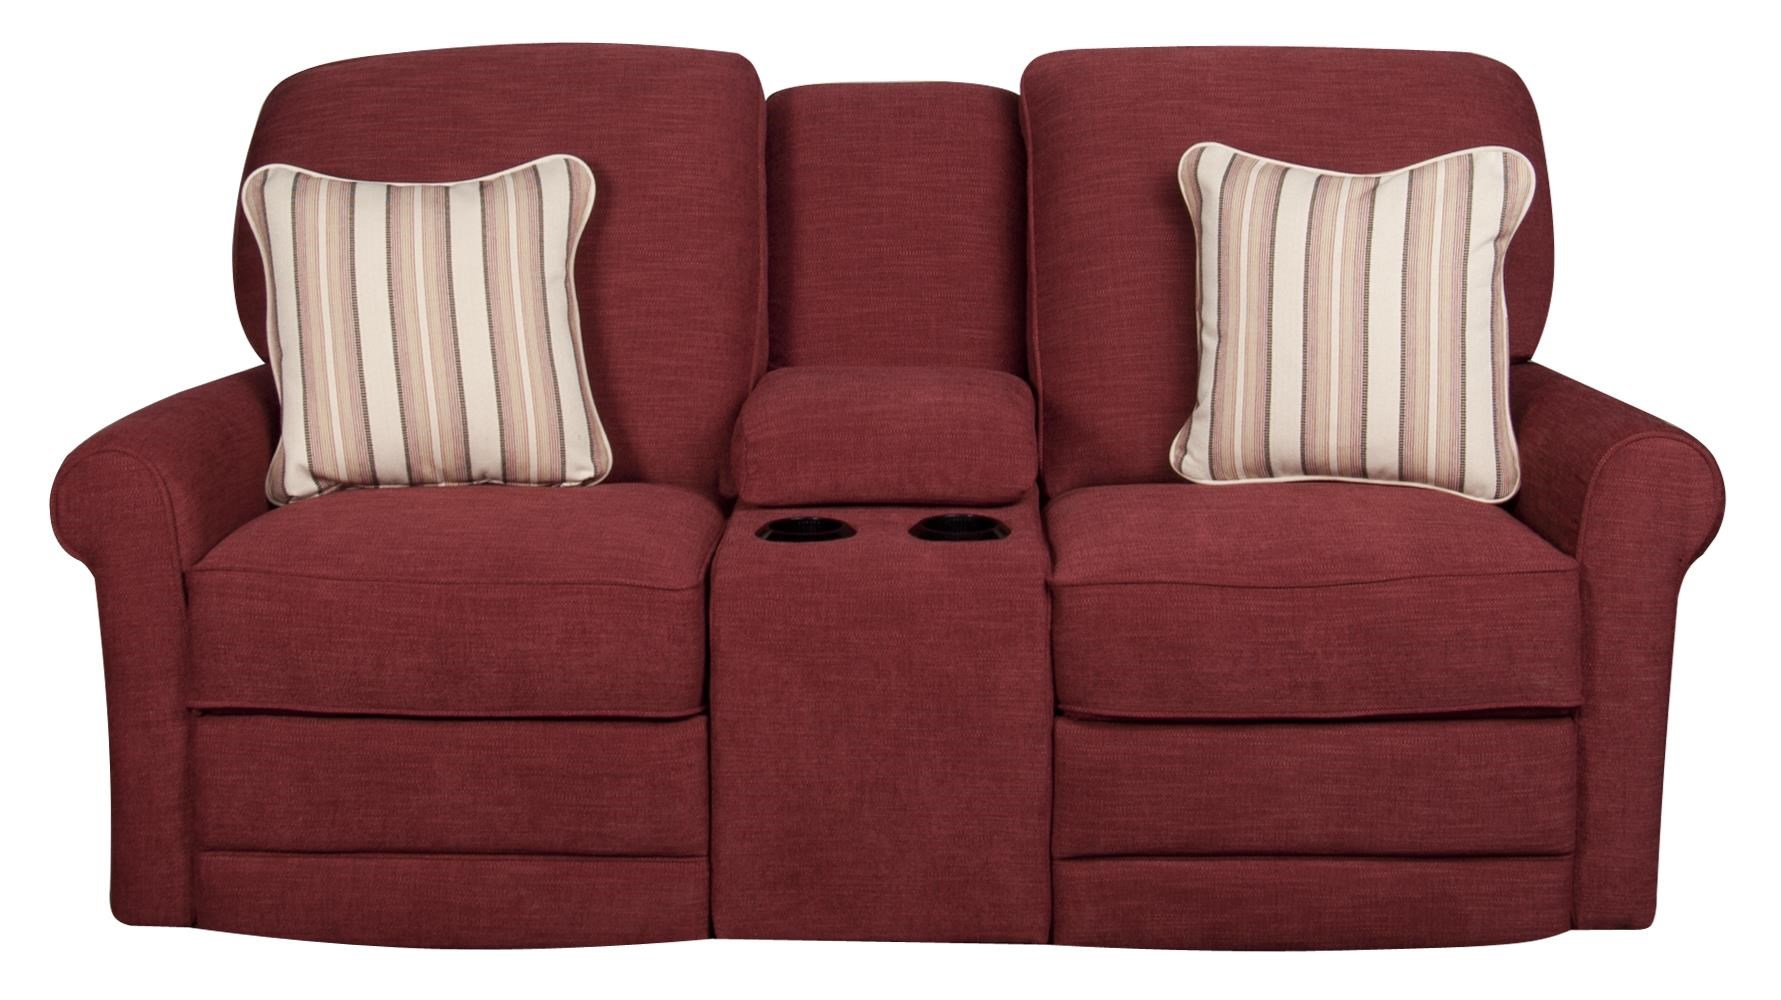 La-Z-Boy Addison Addison Loveseat with Console - Item Number: 680857898